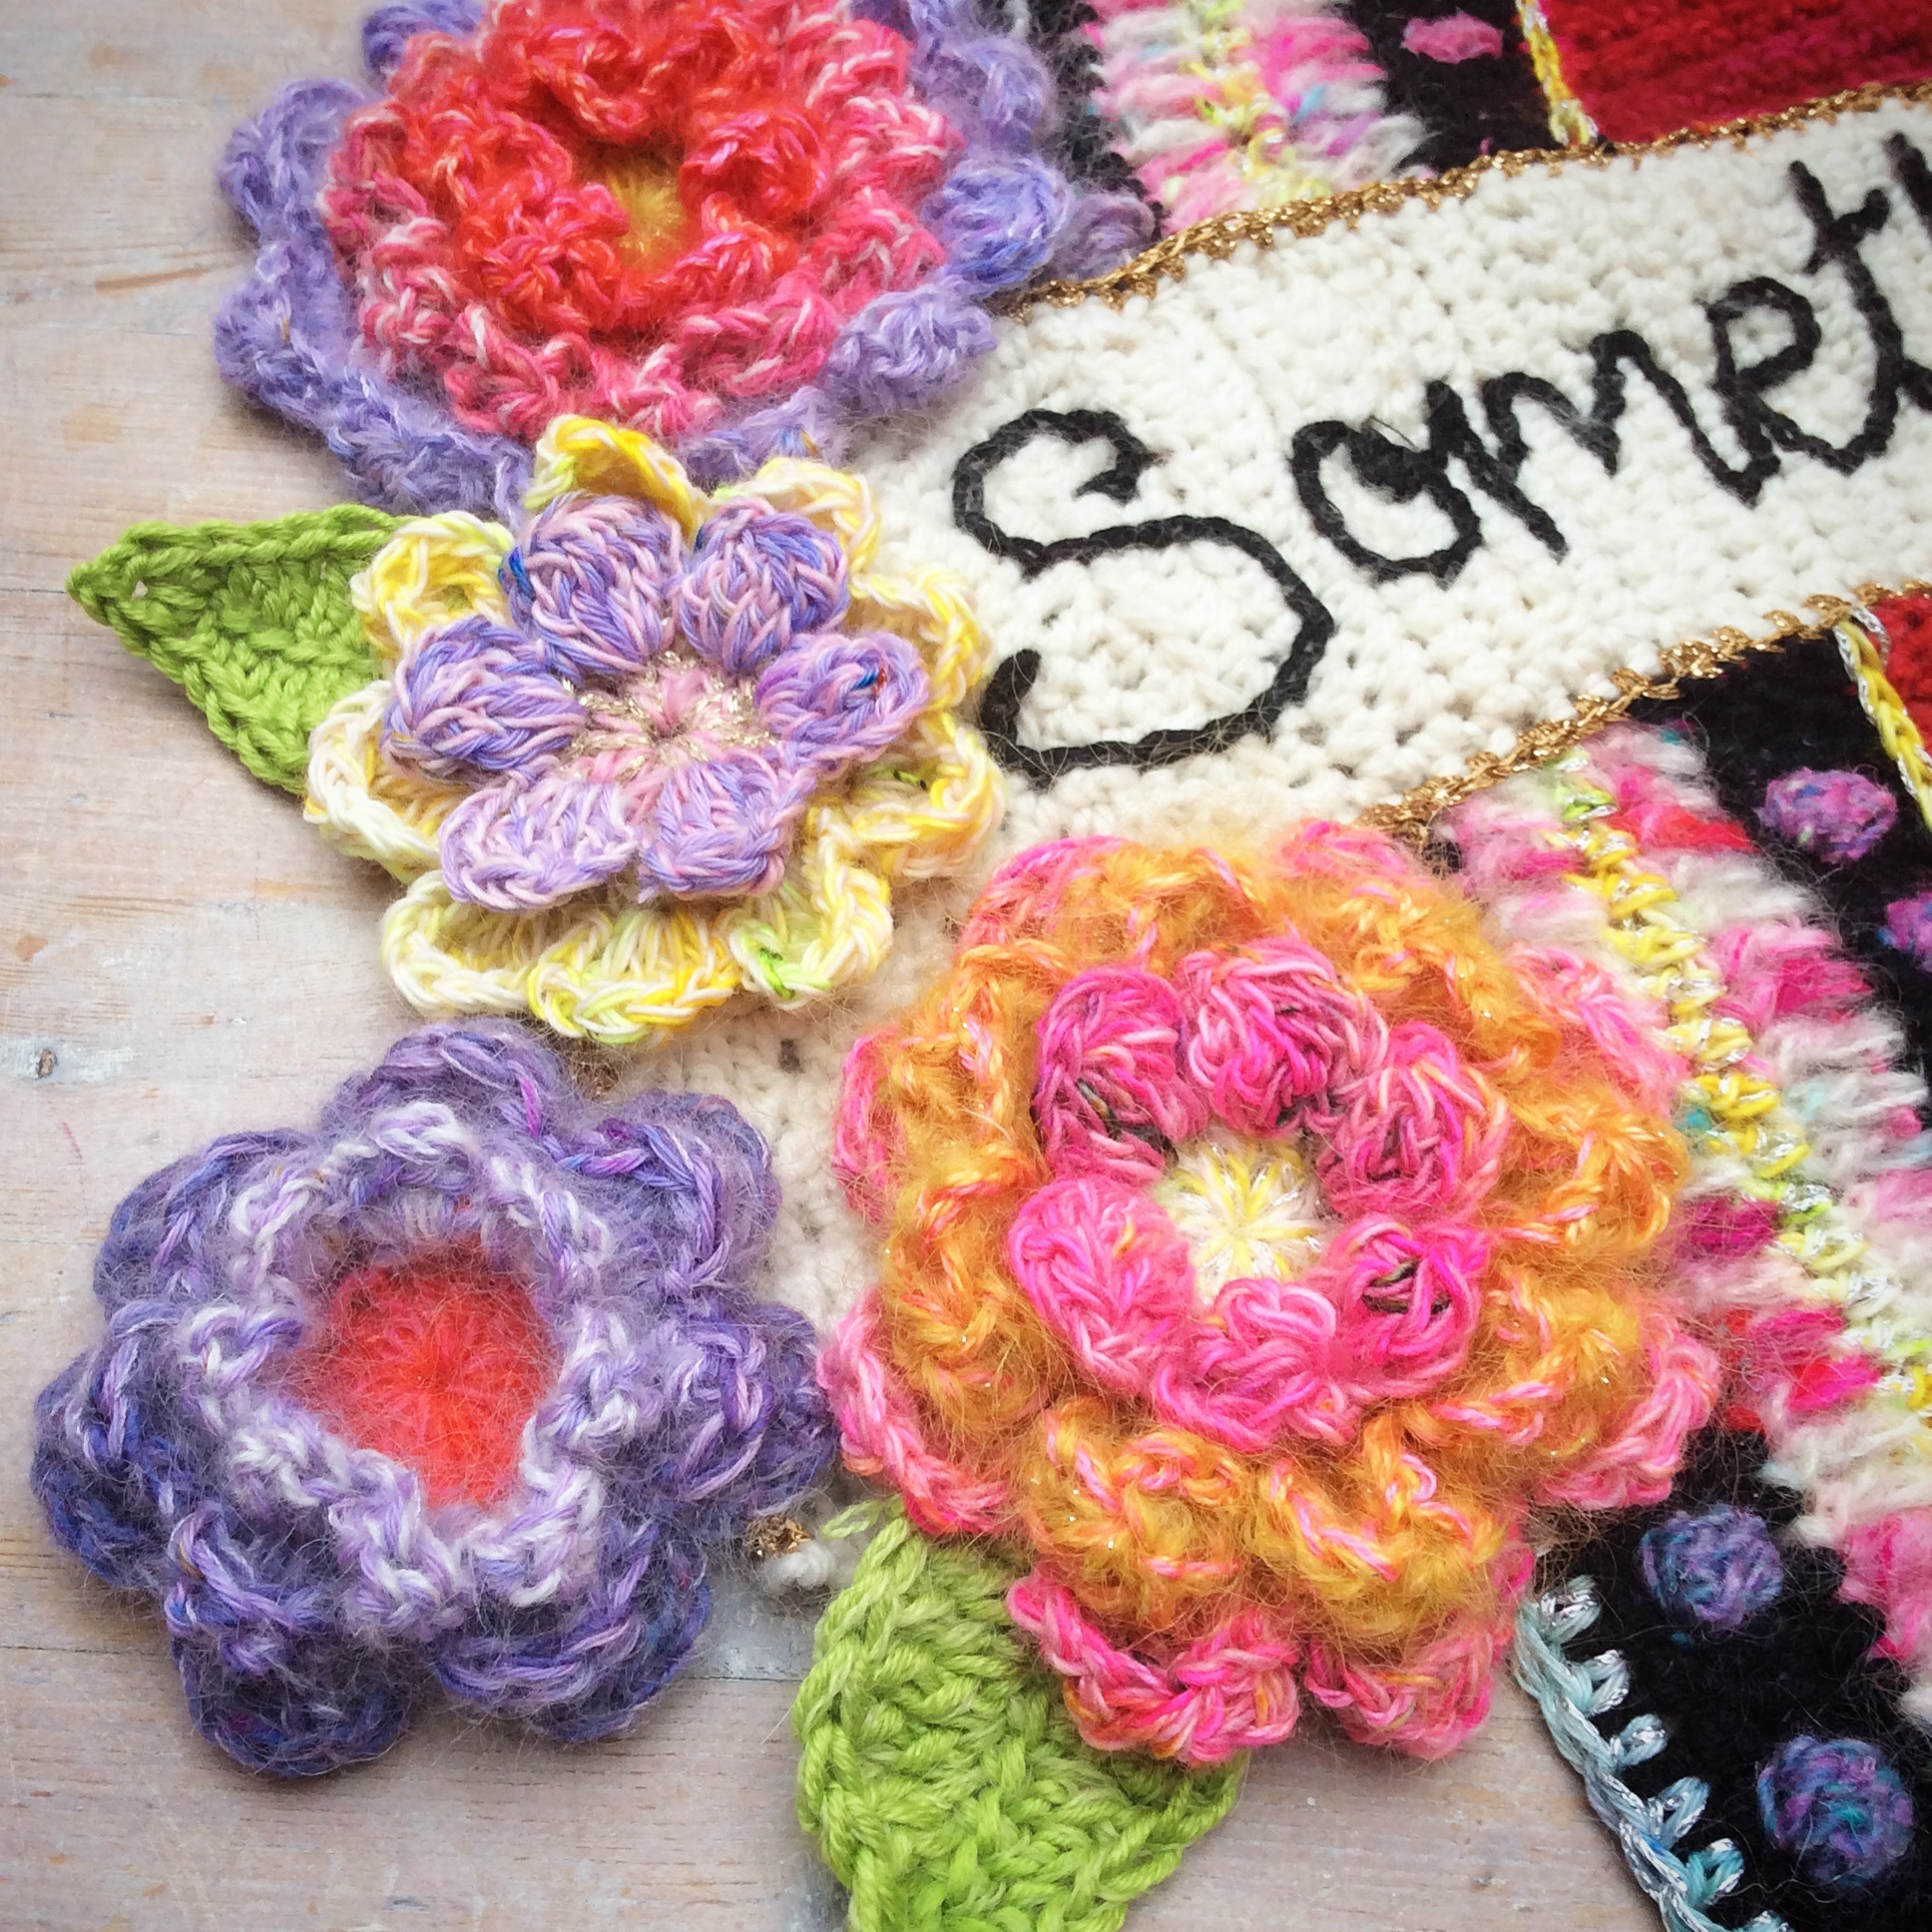 Large oversize crochet flowers detail of crochet art piece by crochet artist Emma Leith